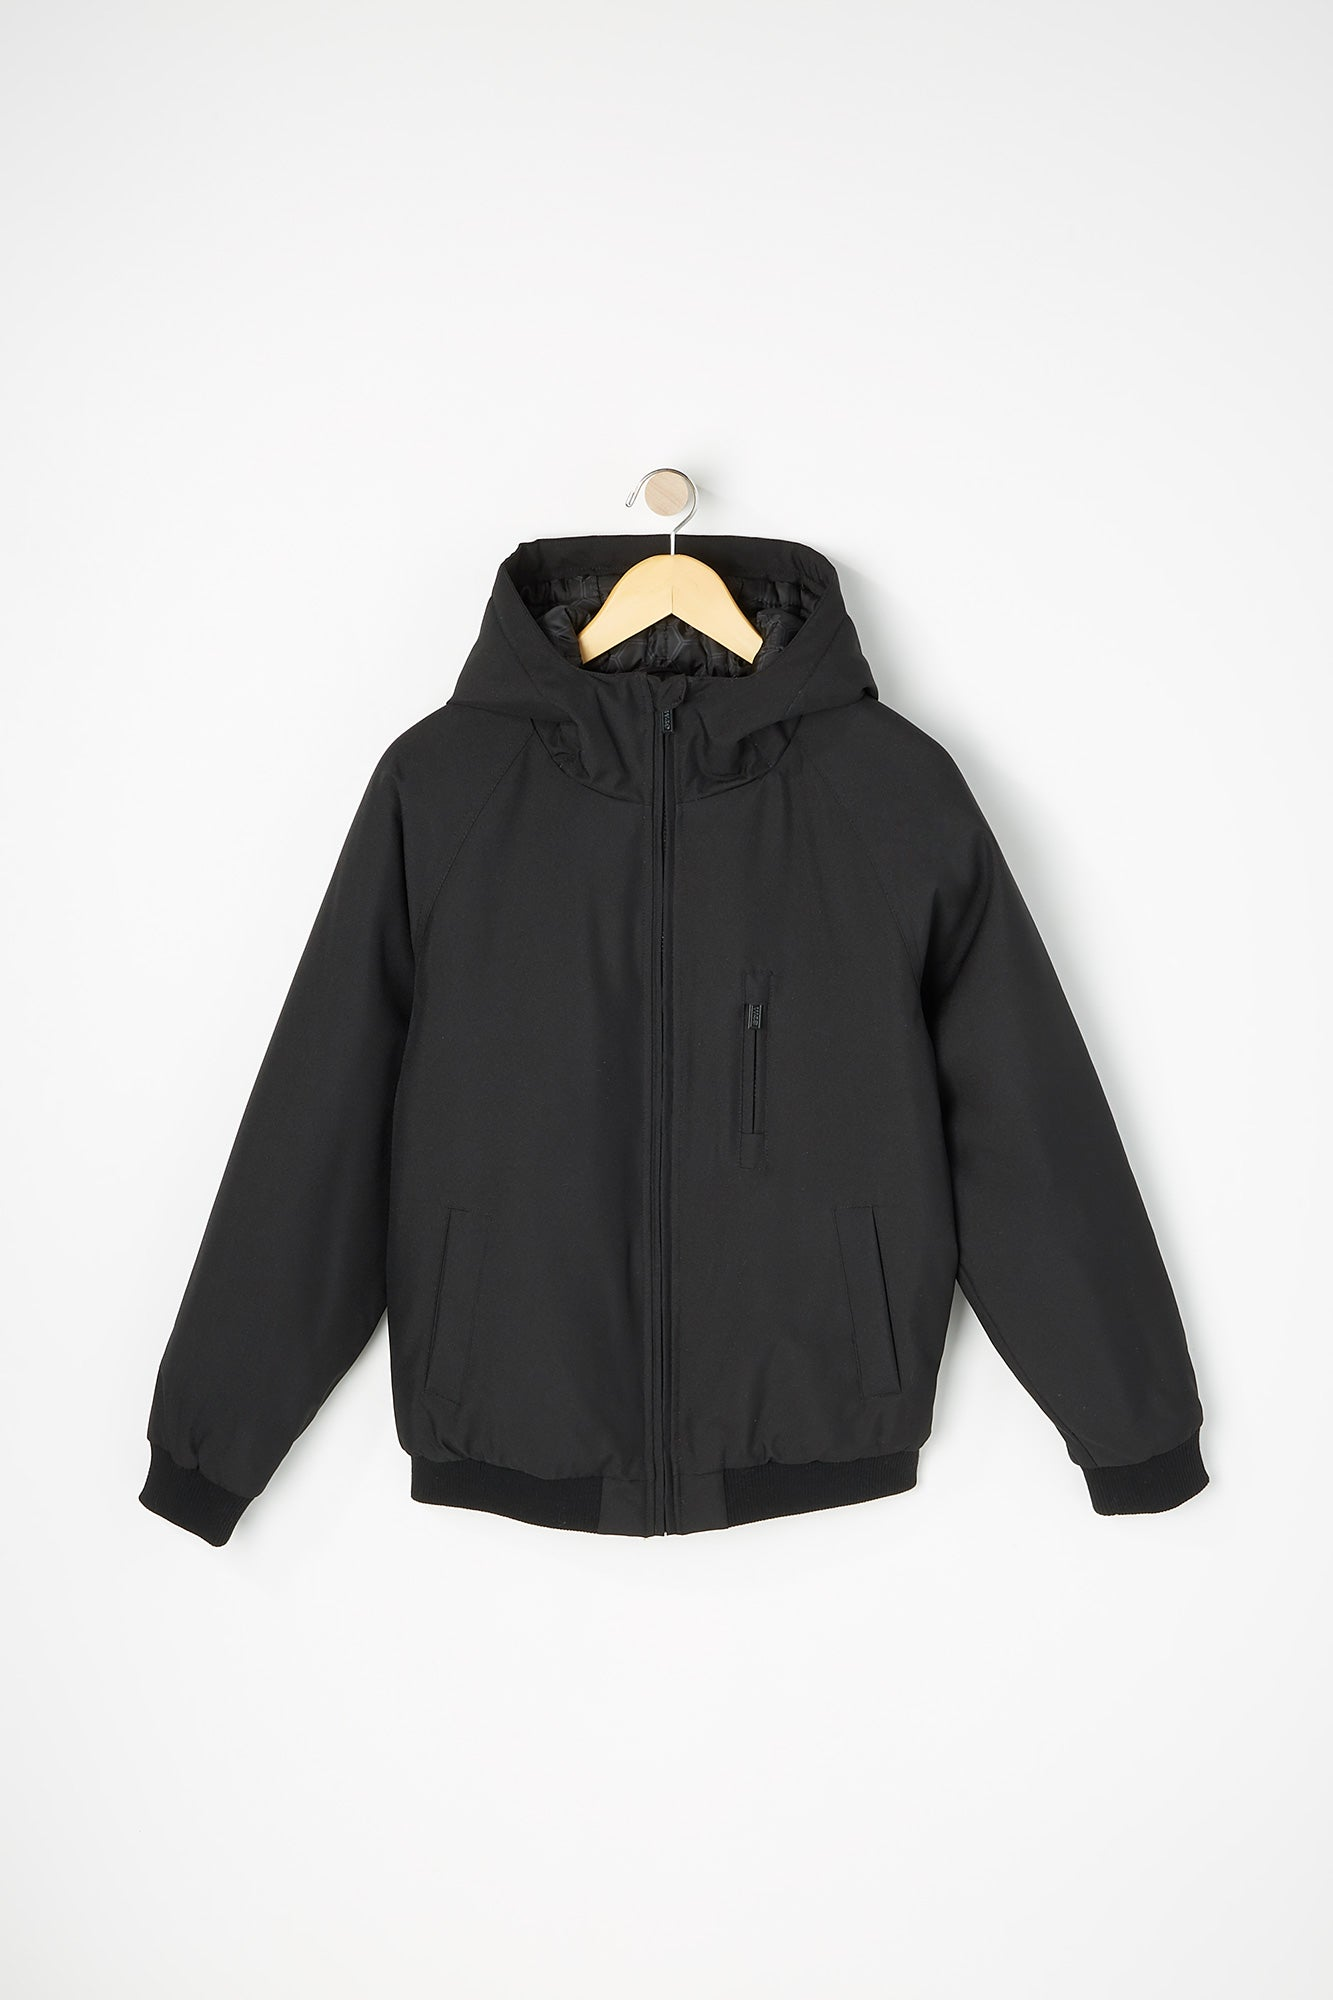 West49 Boys Solid Bomber